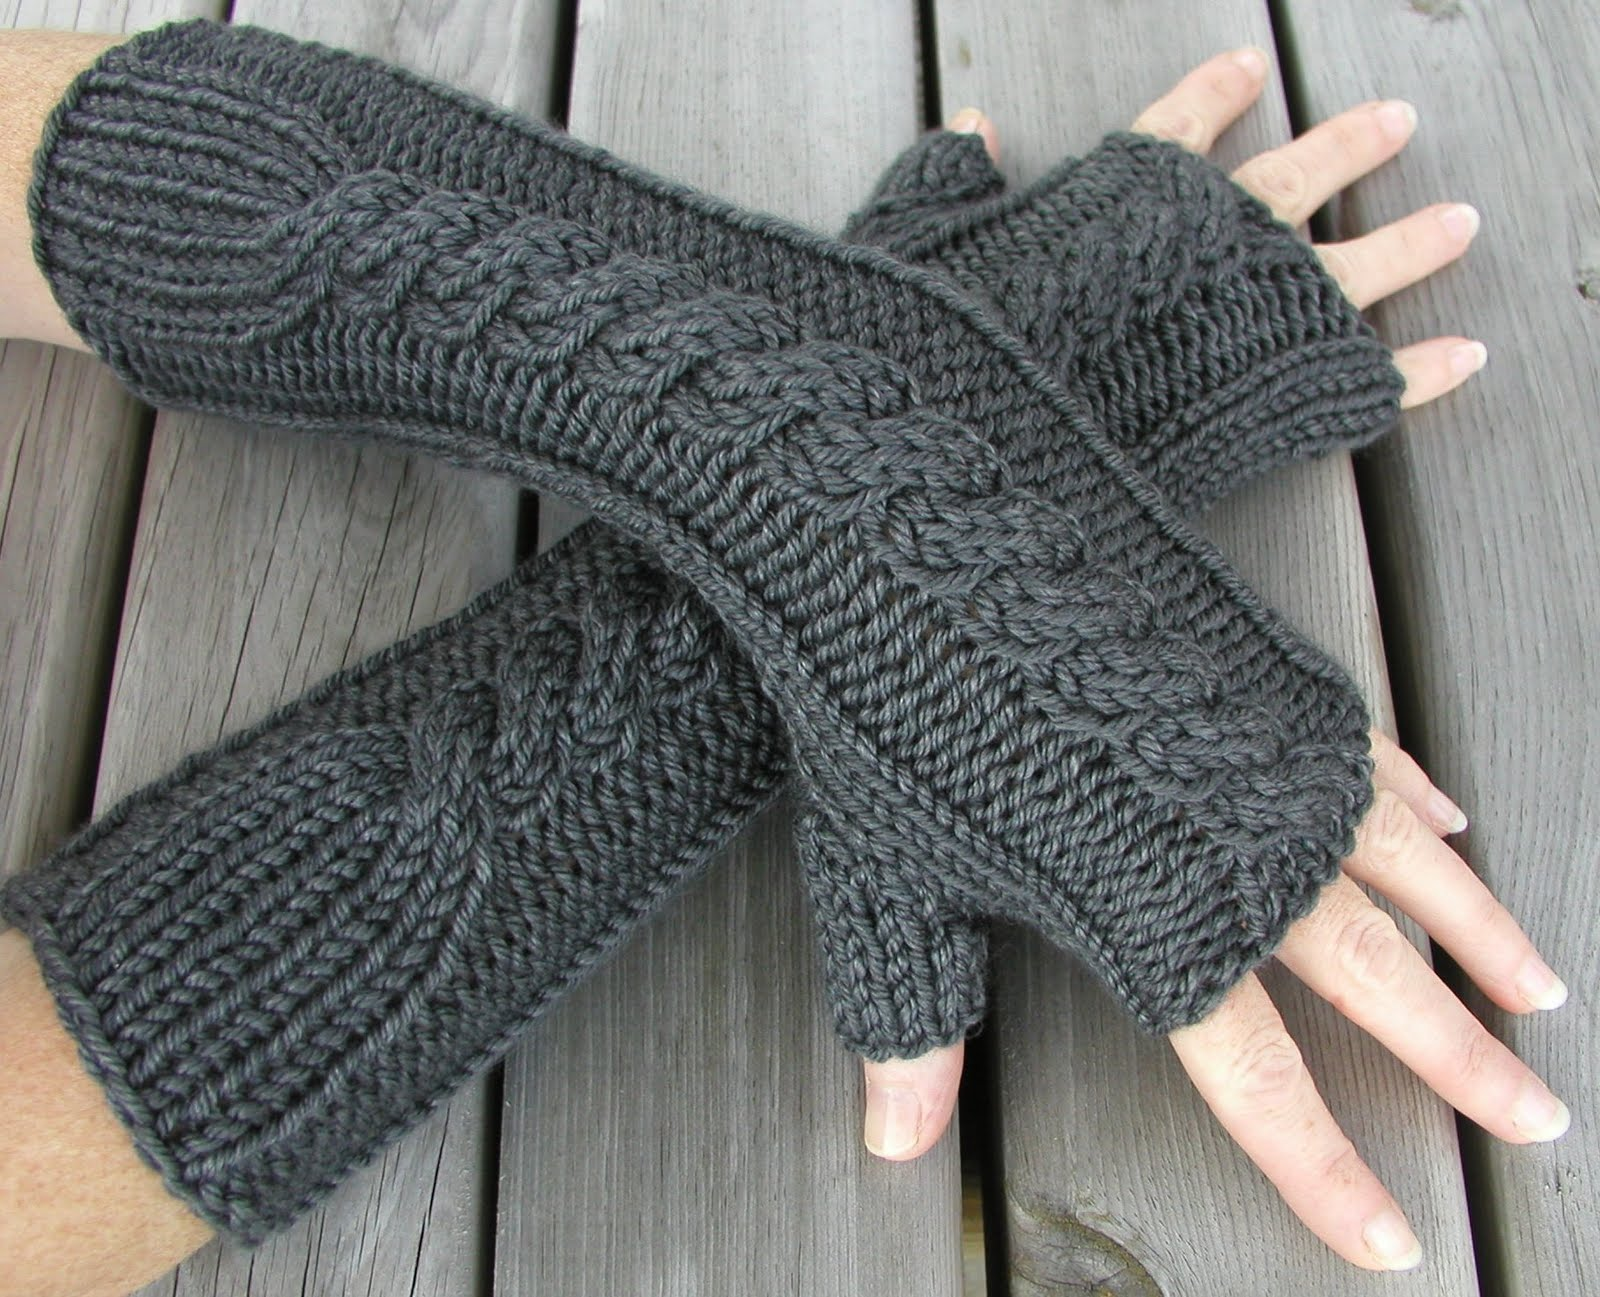 Knitted Glove Patterns : Hand Knitted Things Patterns